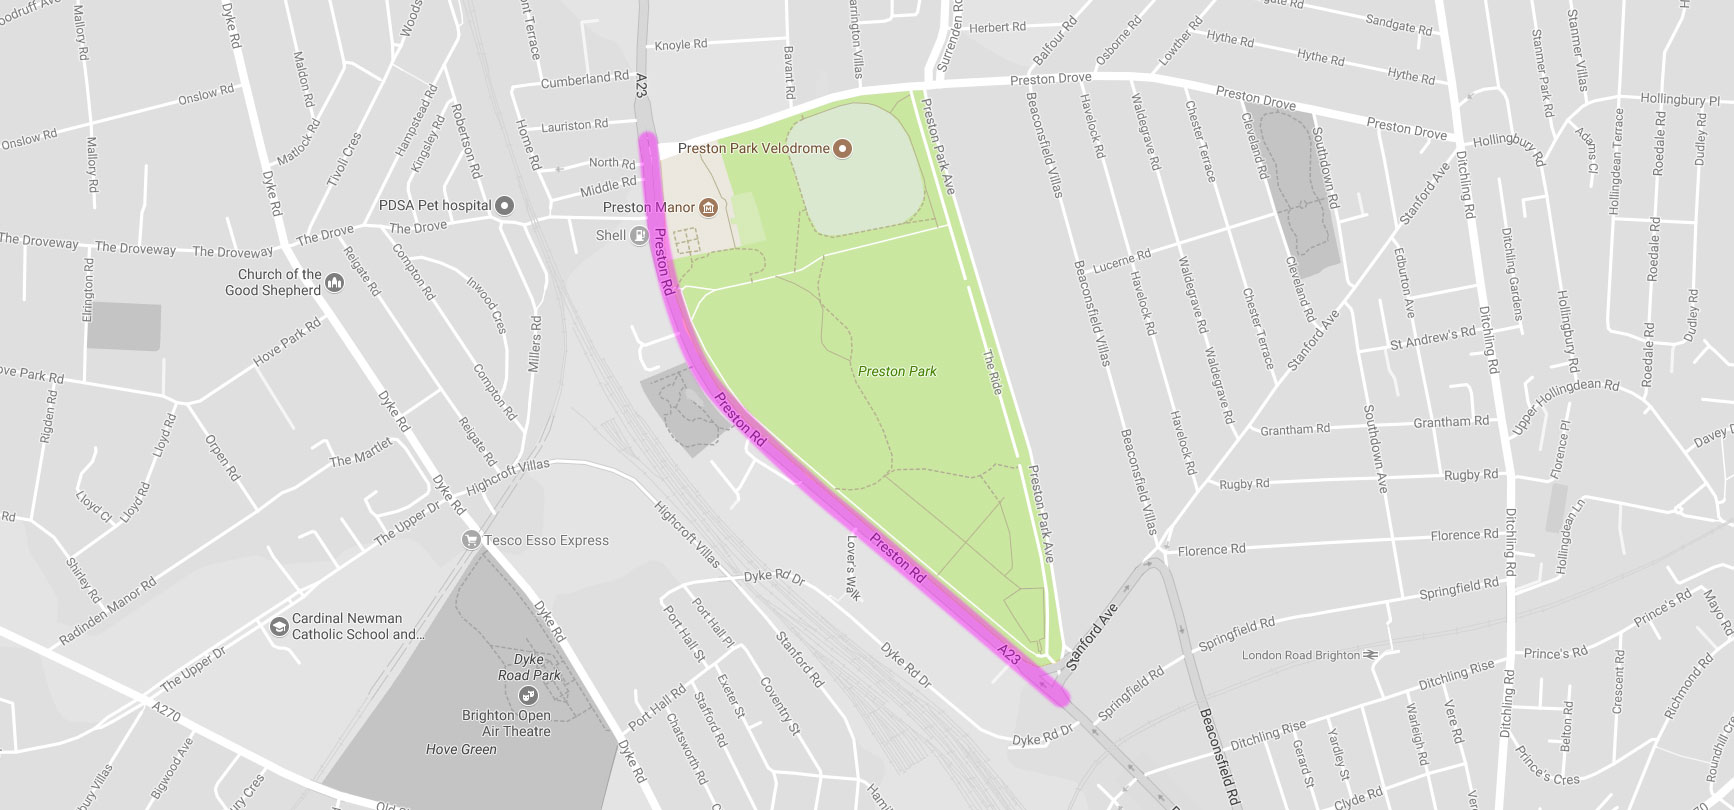 Road Closures on Sat 5 August